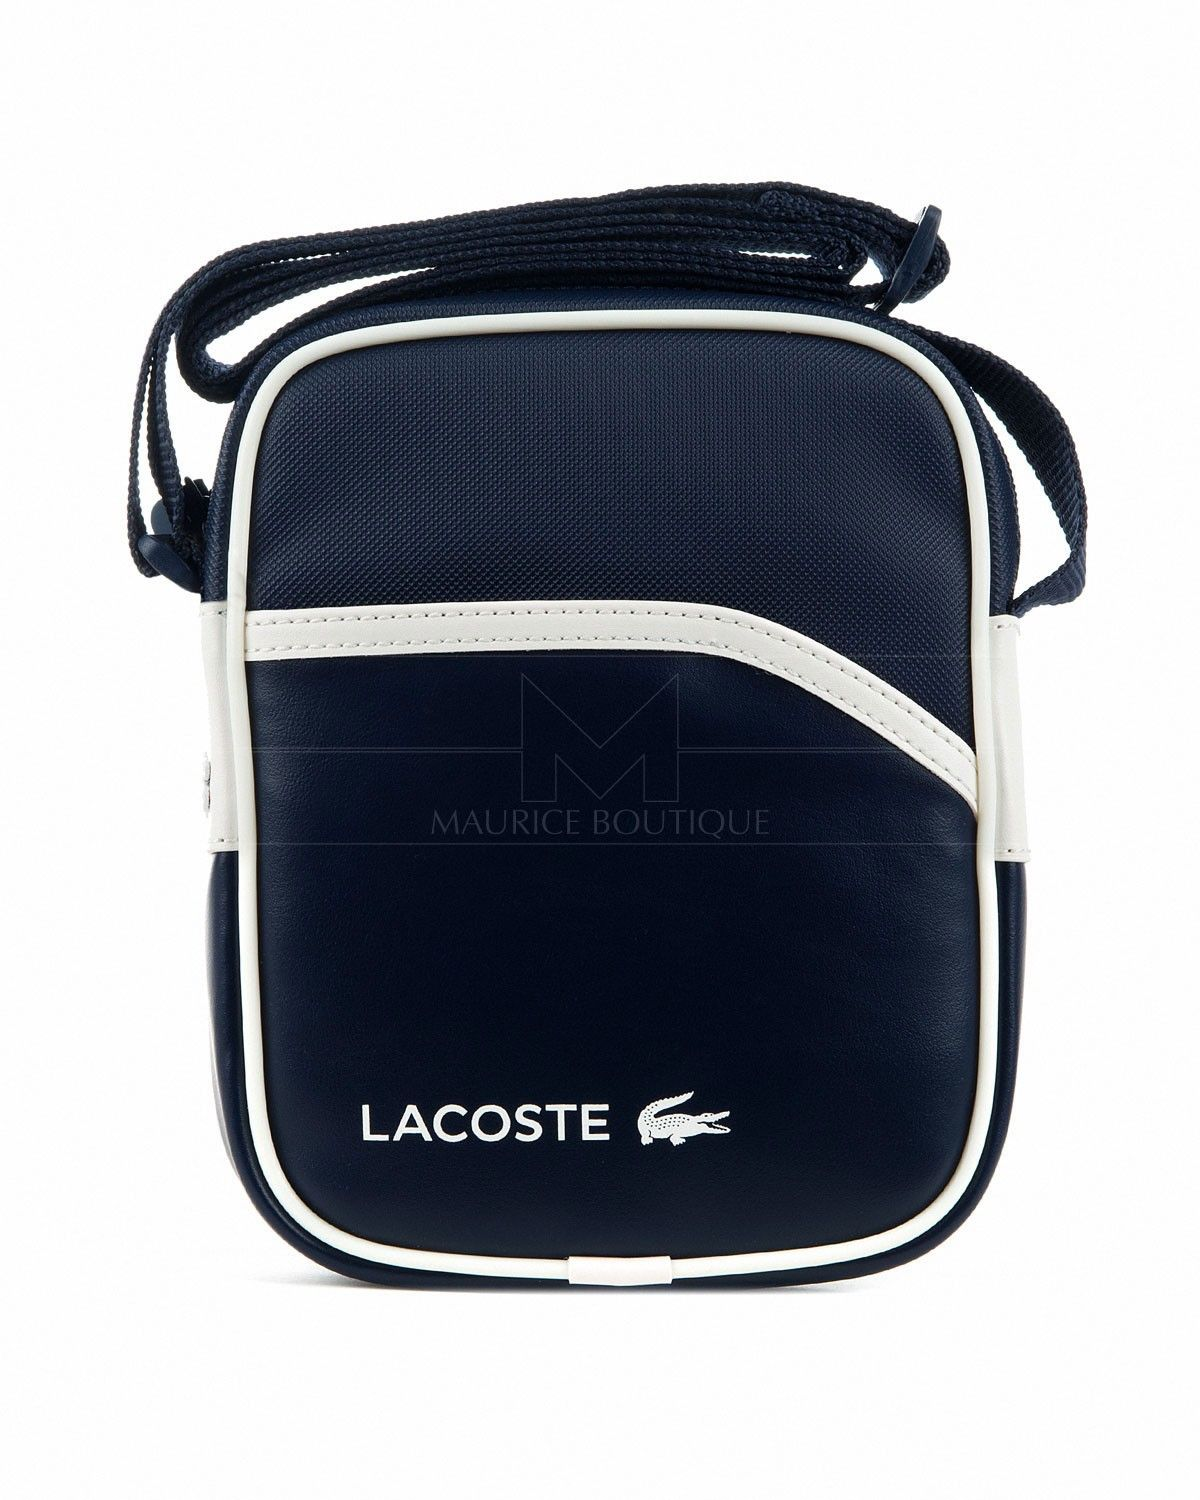 1f6995ad09c Navy Blue Lacoste mens bag - Pvc   ~Lacoste~... in 2019   Lacoste ...